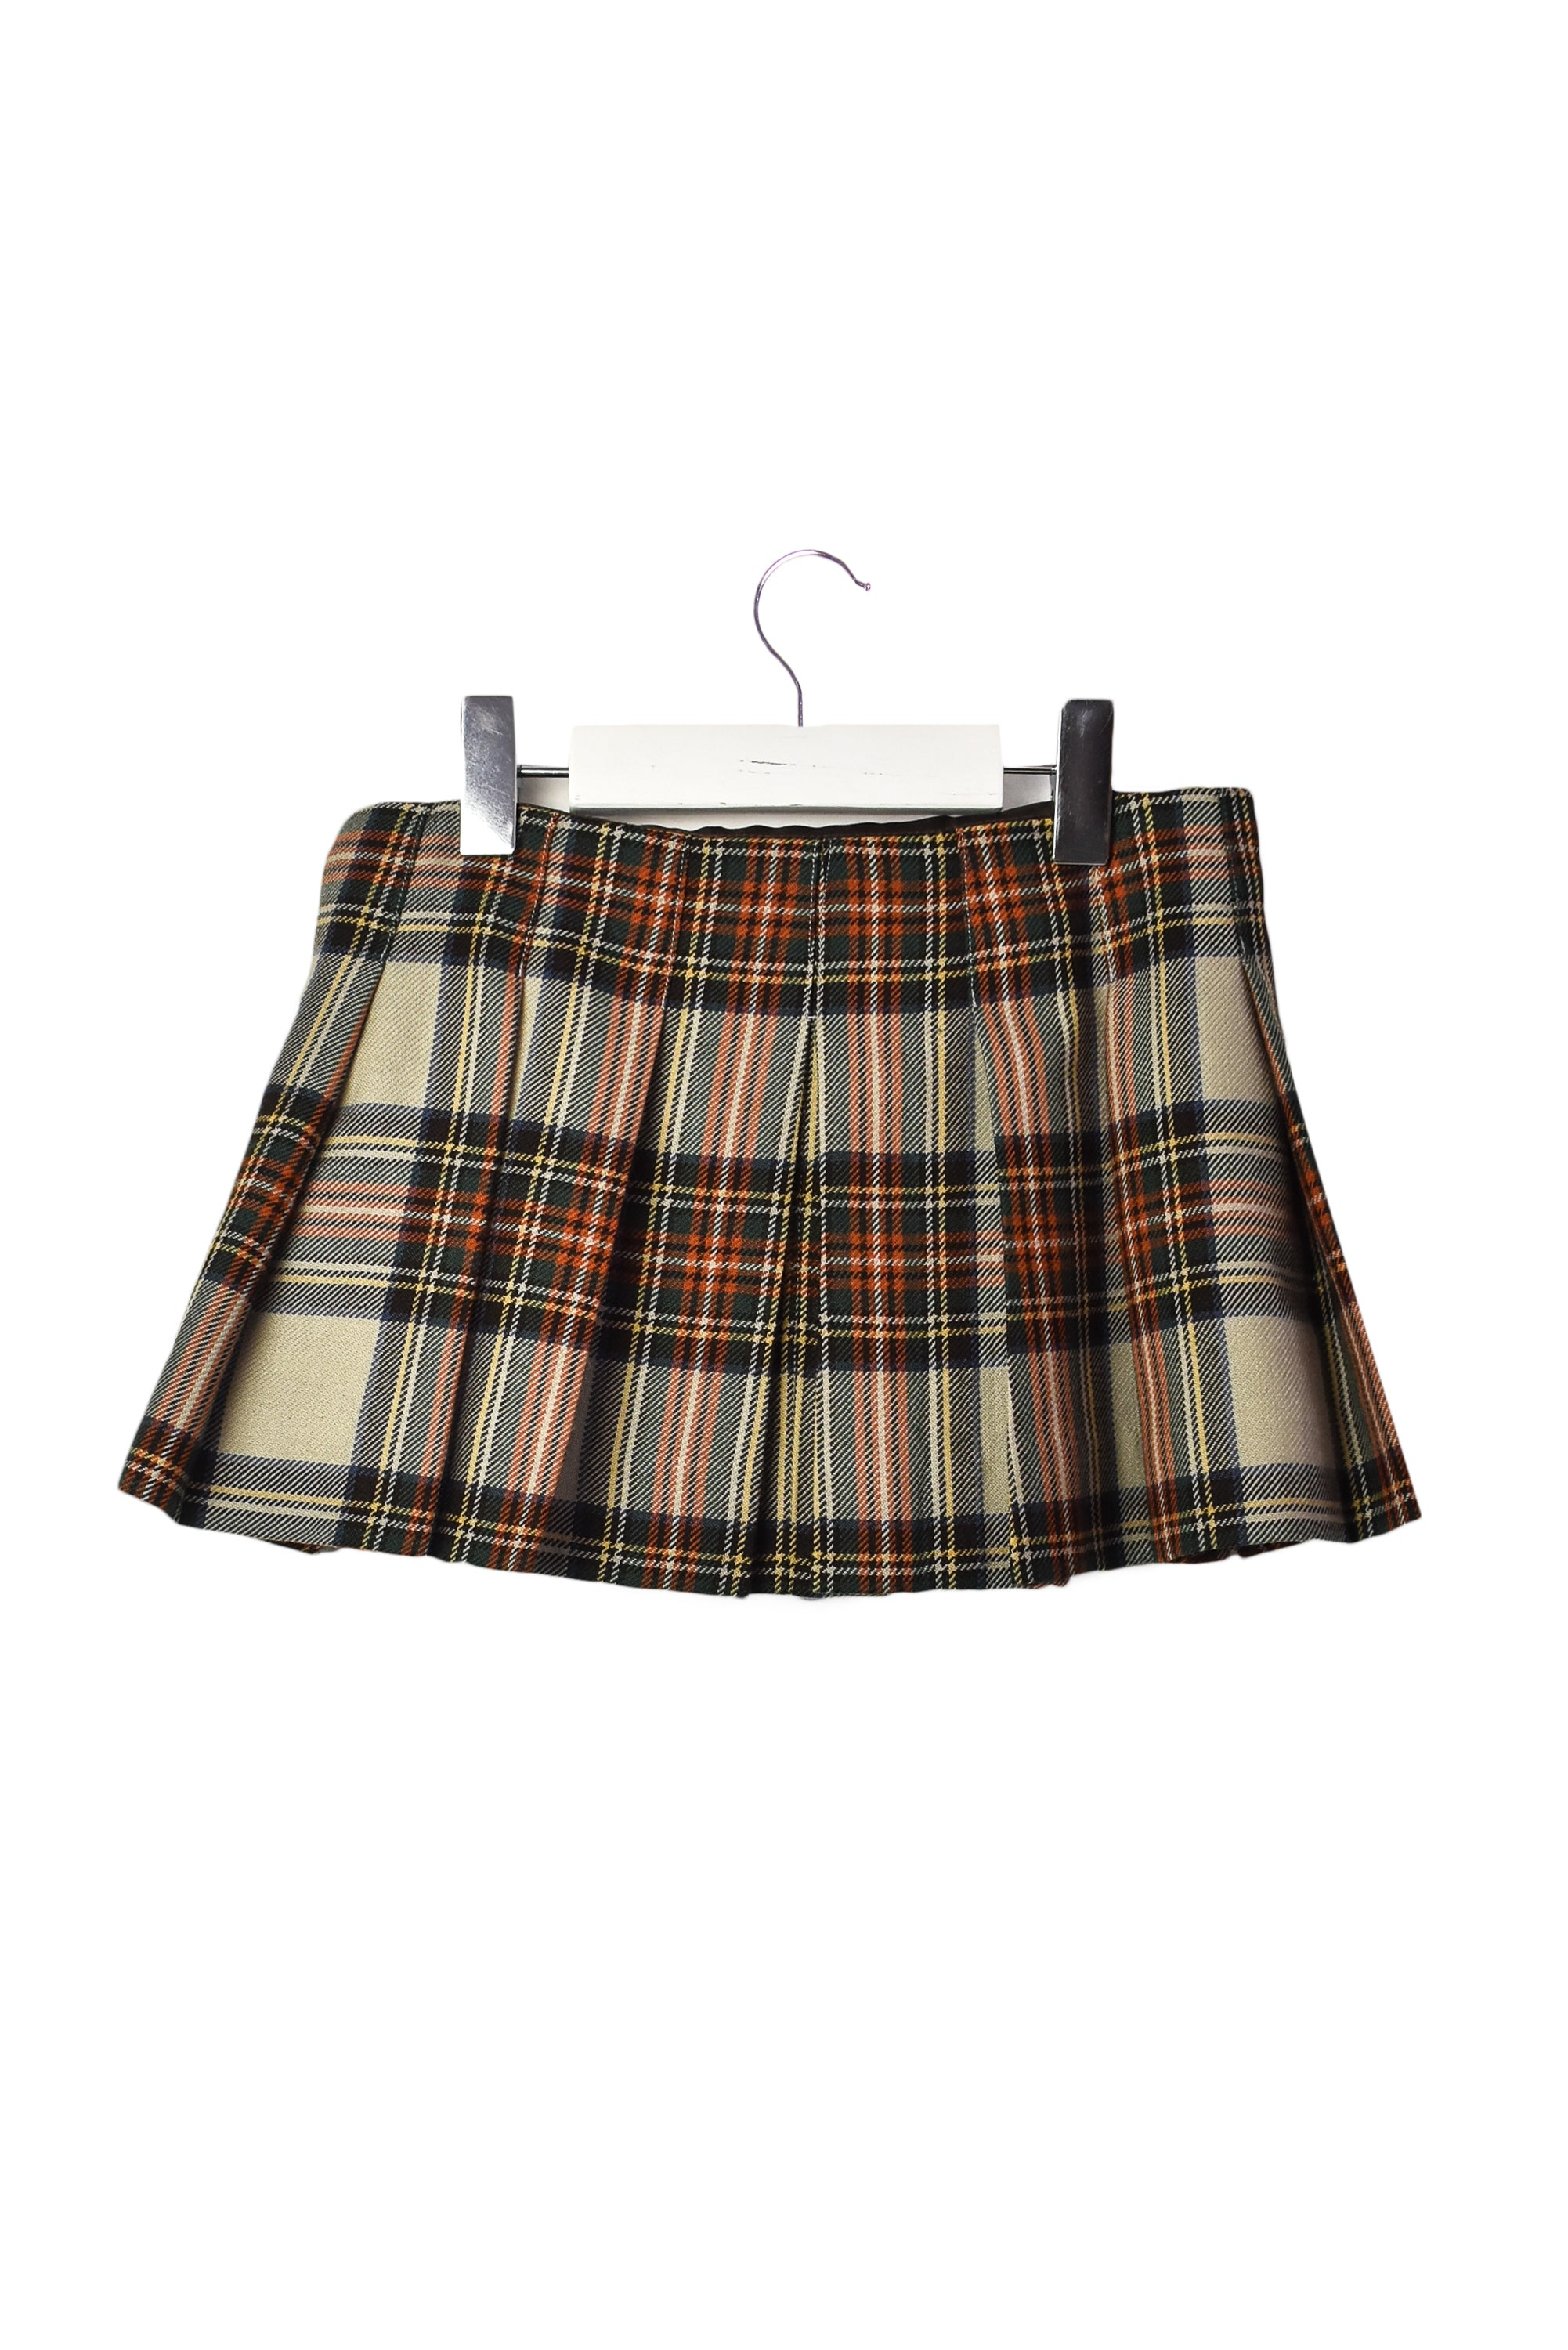 10007268 Bonpoint Kids~ Skirt 4T at Retykle